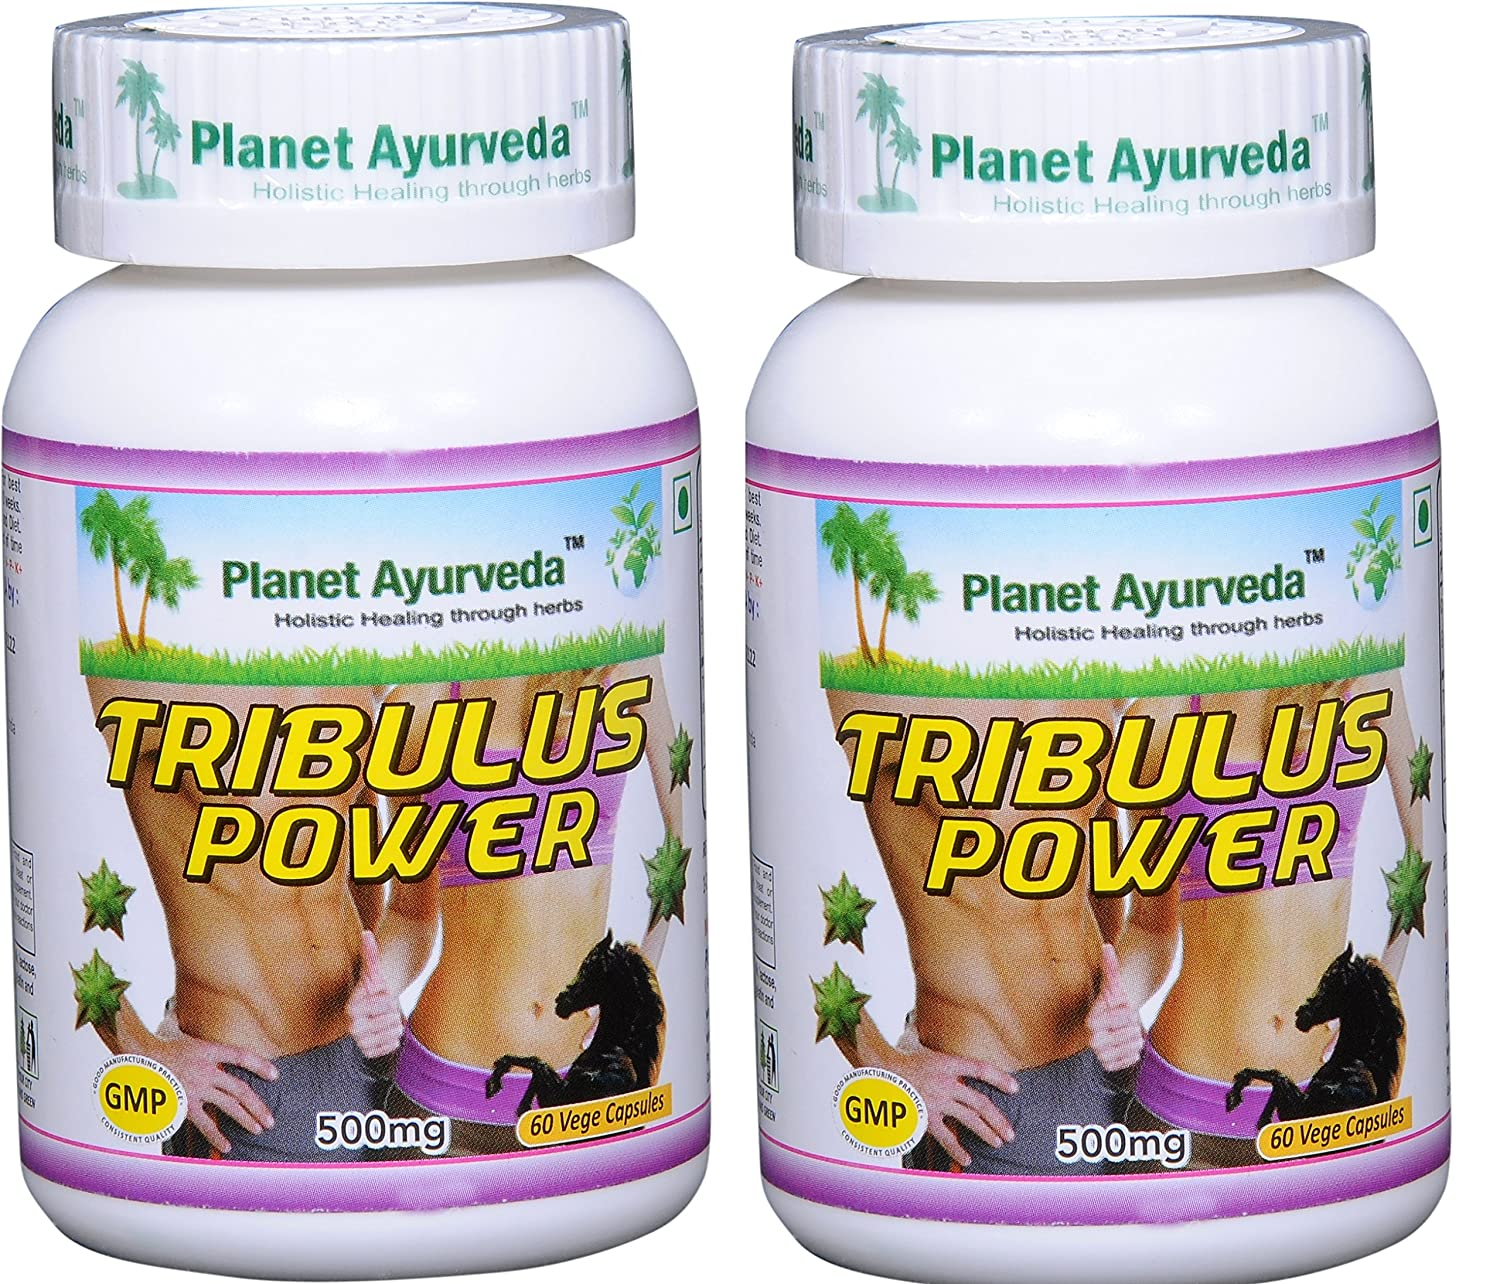 Planet Ayurveda Tribulus Power, 500mg Veg Capsules – 2 Bottles – Bring Out the Man in You